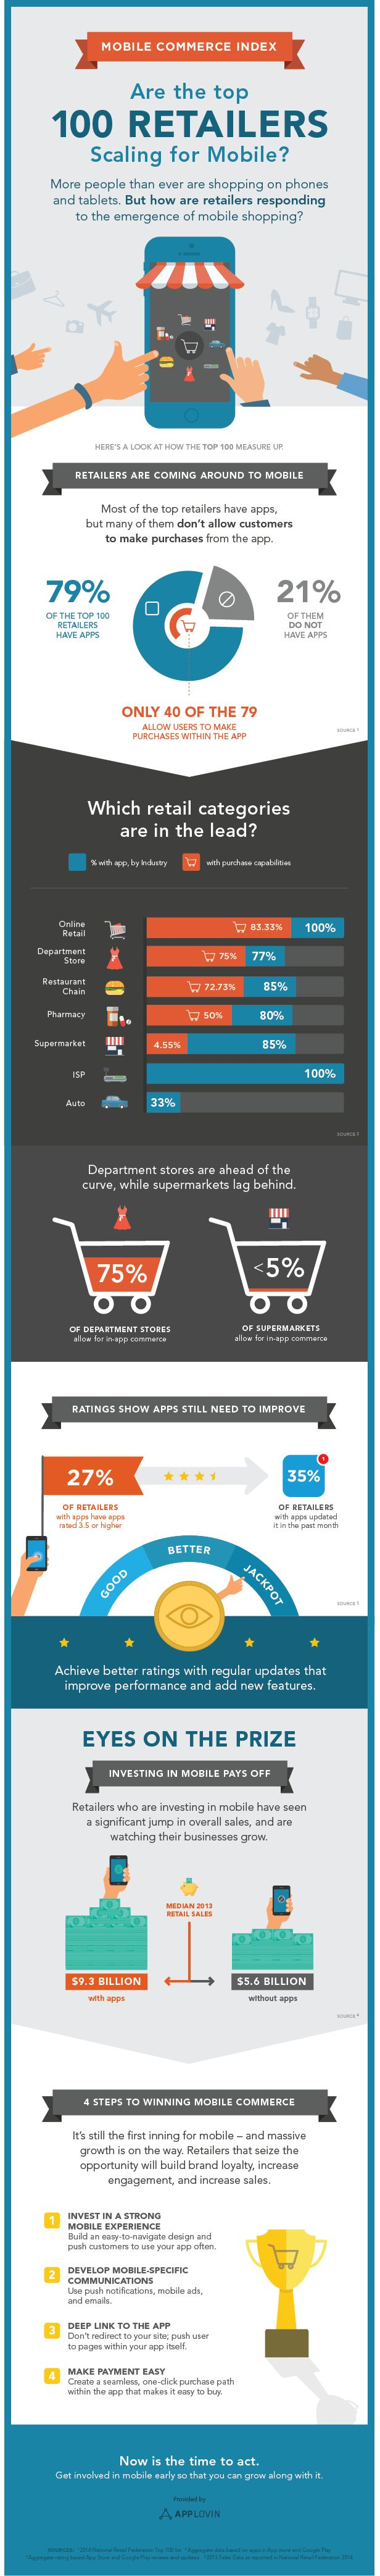 Retail Brands That Don't Go Mobile Lose Out on Billions (Infographic)